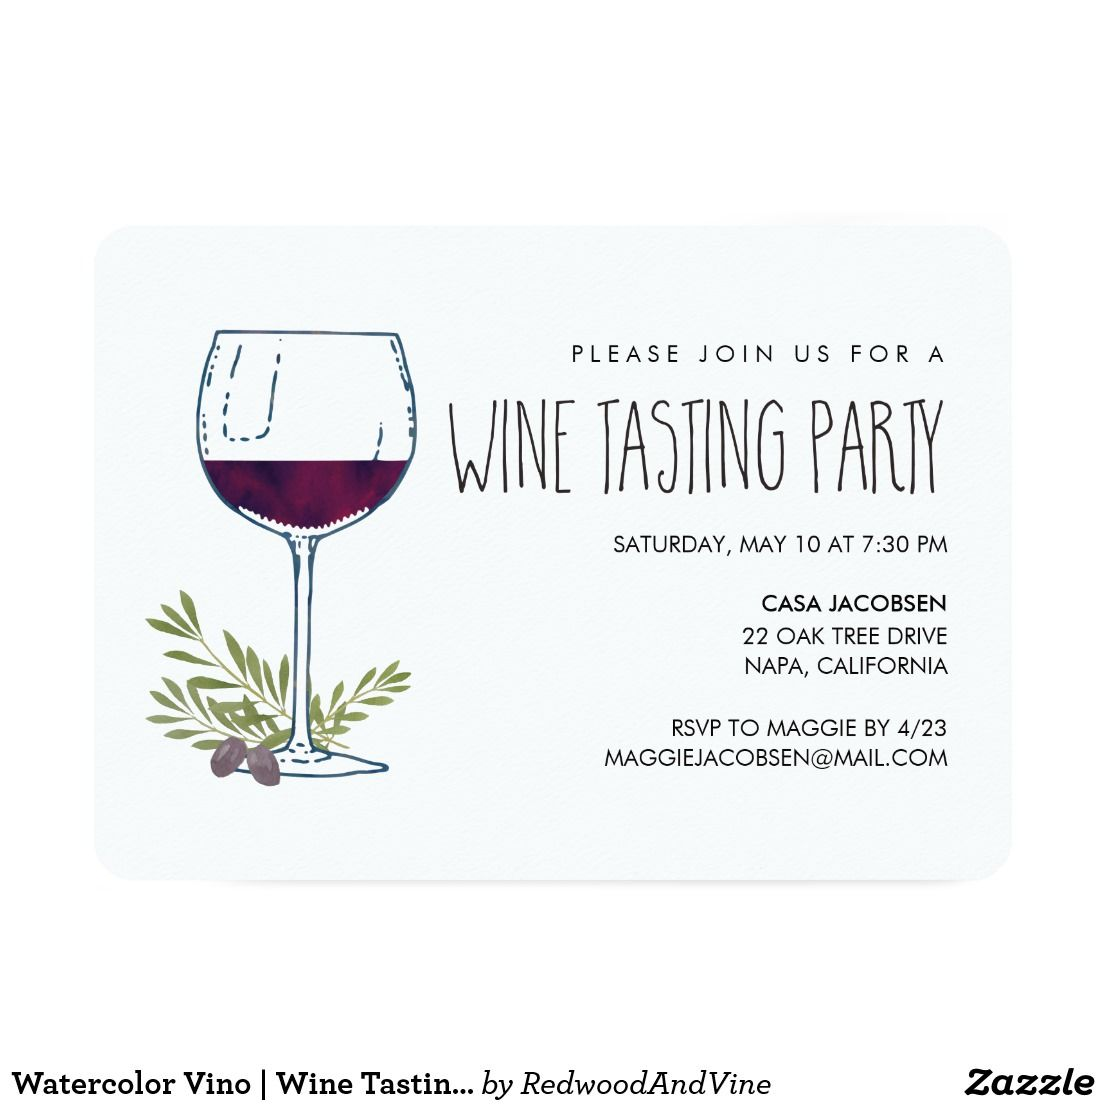 Watercolor Vino | Wine Tasting Party Card | Wine tasting party and ...